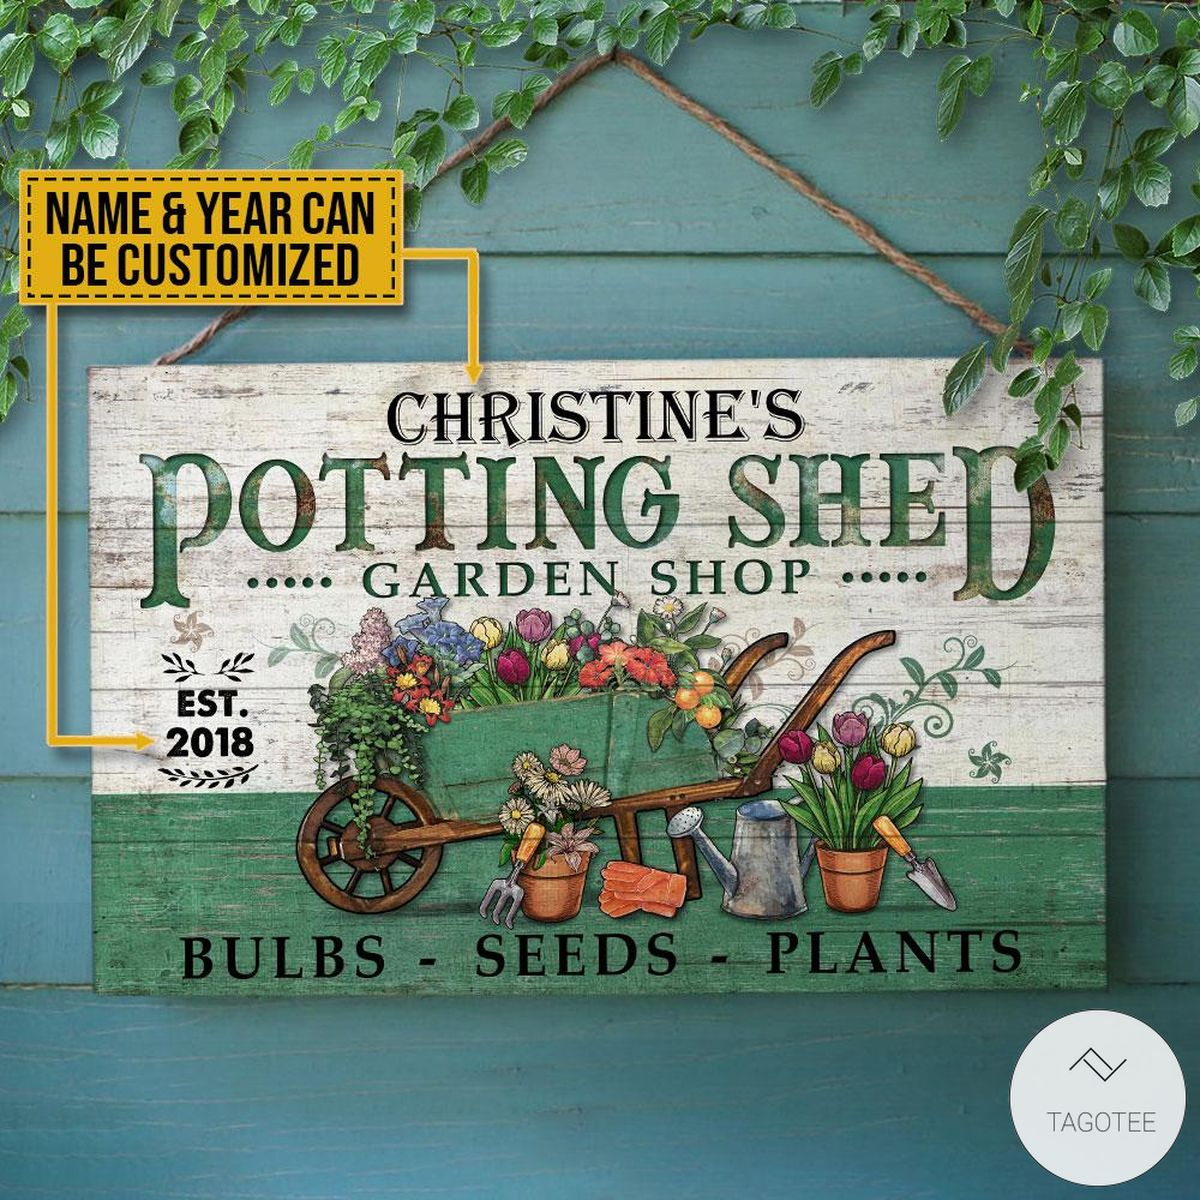 Personalized Garden Potting Shed Garden Shop Bulbs - Seeds - Plants Rectangle Wood Sign